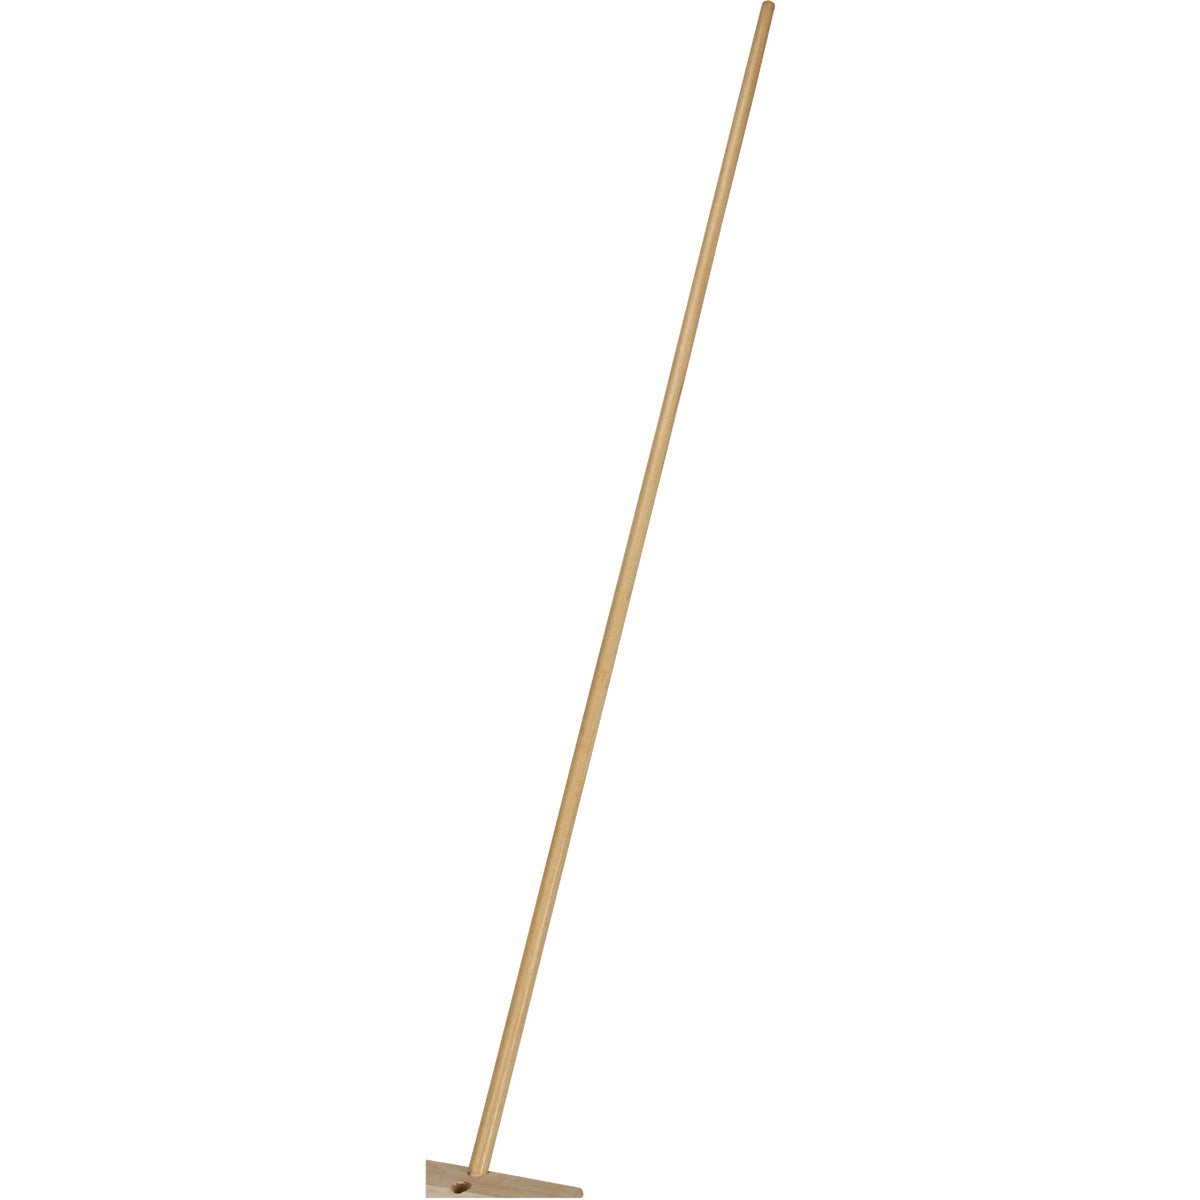 "72"" THREAD BROOM HANDLE - TH7202 by Waddell Mfg Company"